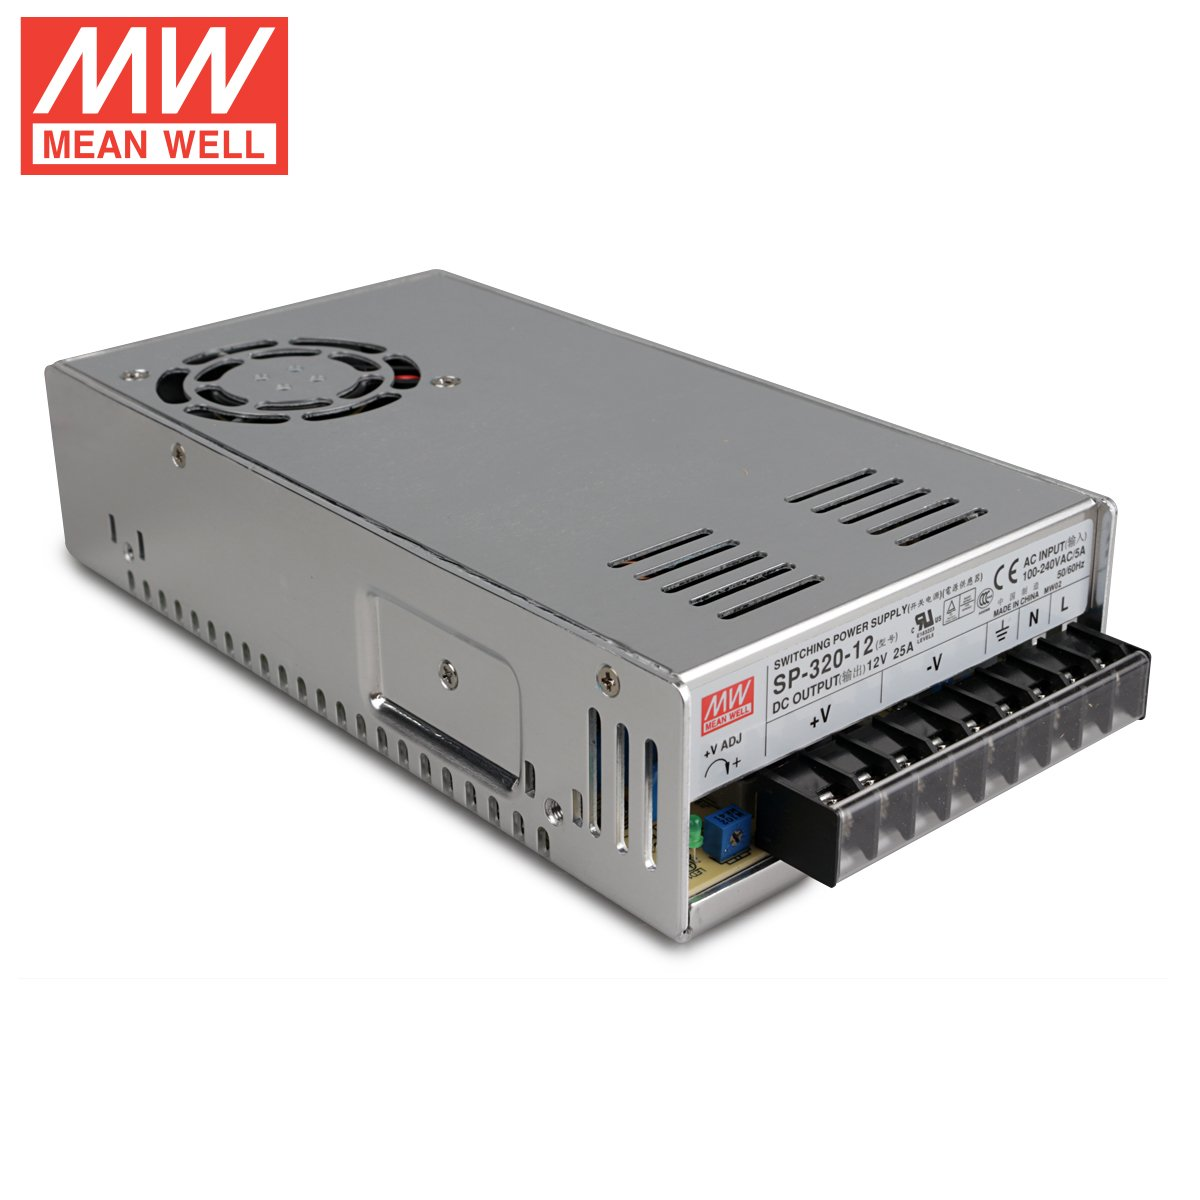 MeanWell SP-320-12 AC//DC Power Supply Single Output 12 Volt 25 Amp 300 Watt New